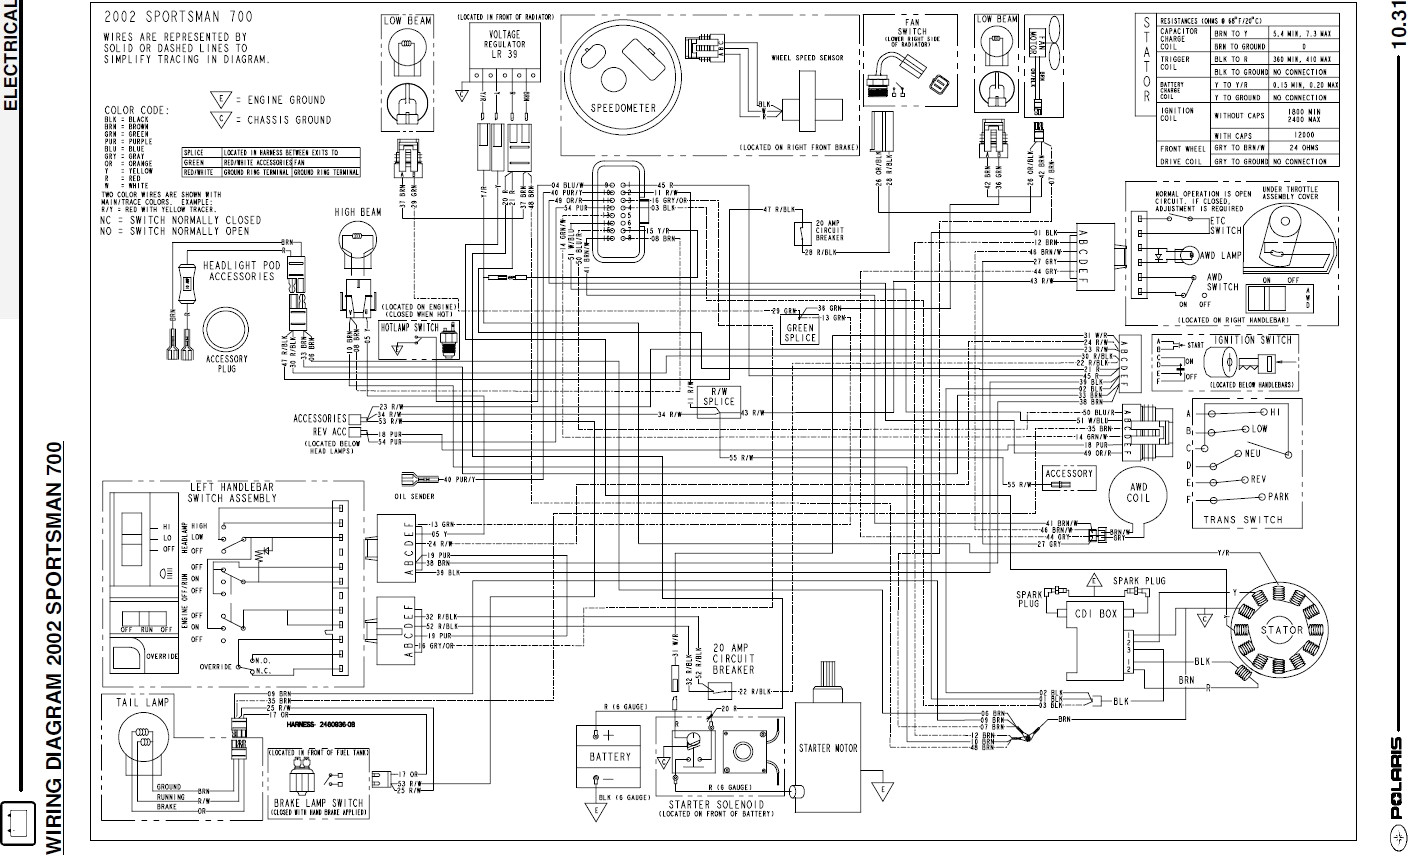 Polaris Ranger 500 Wiring Diagram 2003 Ford Focus Radio Wiring Harness Diagram Begeboy Wiring Diagram Source